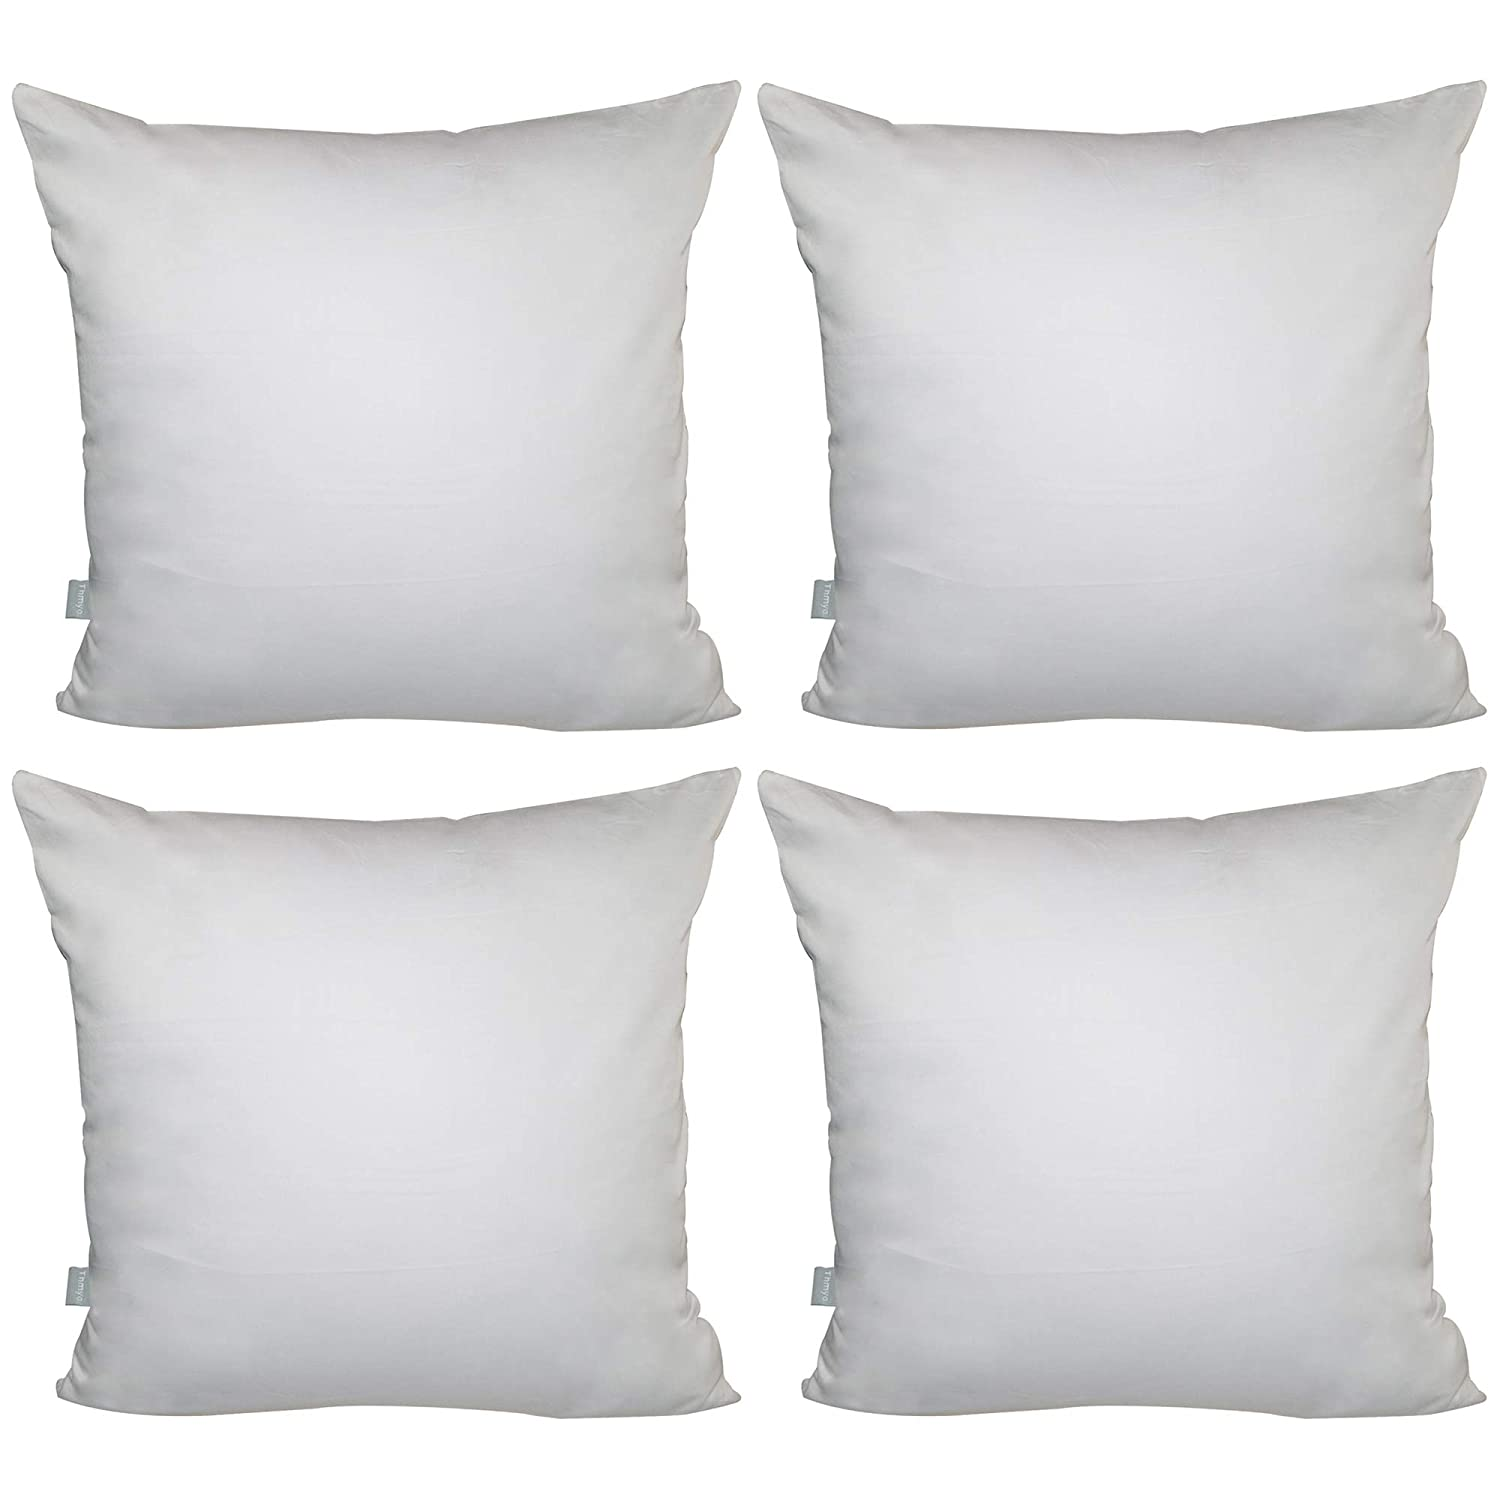 "4-Pack 100% Cotton Comfortable Solid Decorative Throw Pillow Case Square Cushion Cover Pillowcase 17.7"" x 17.7"" (Black) Thmyo"